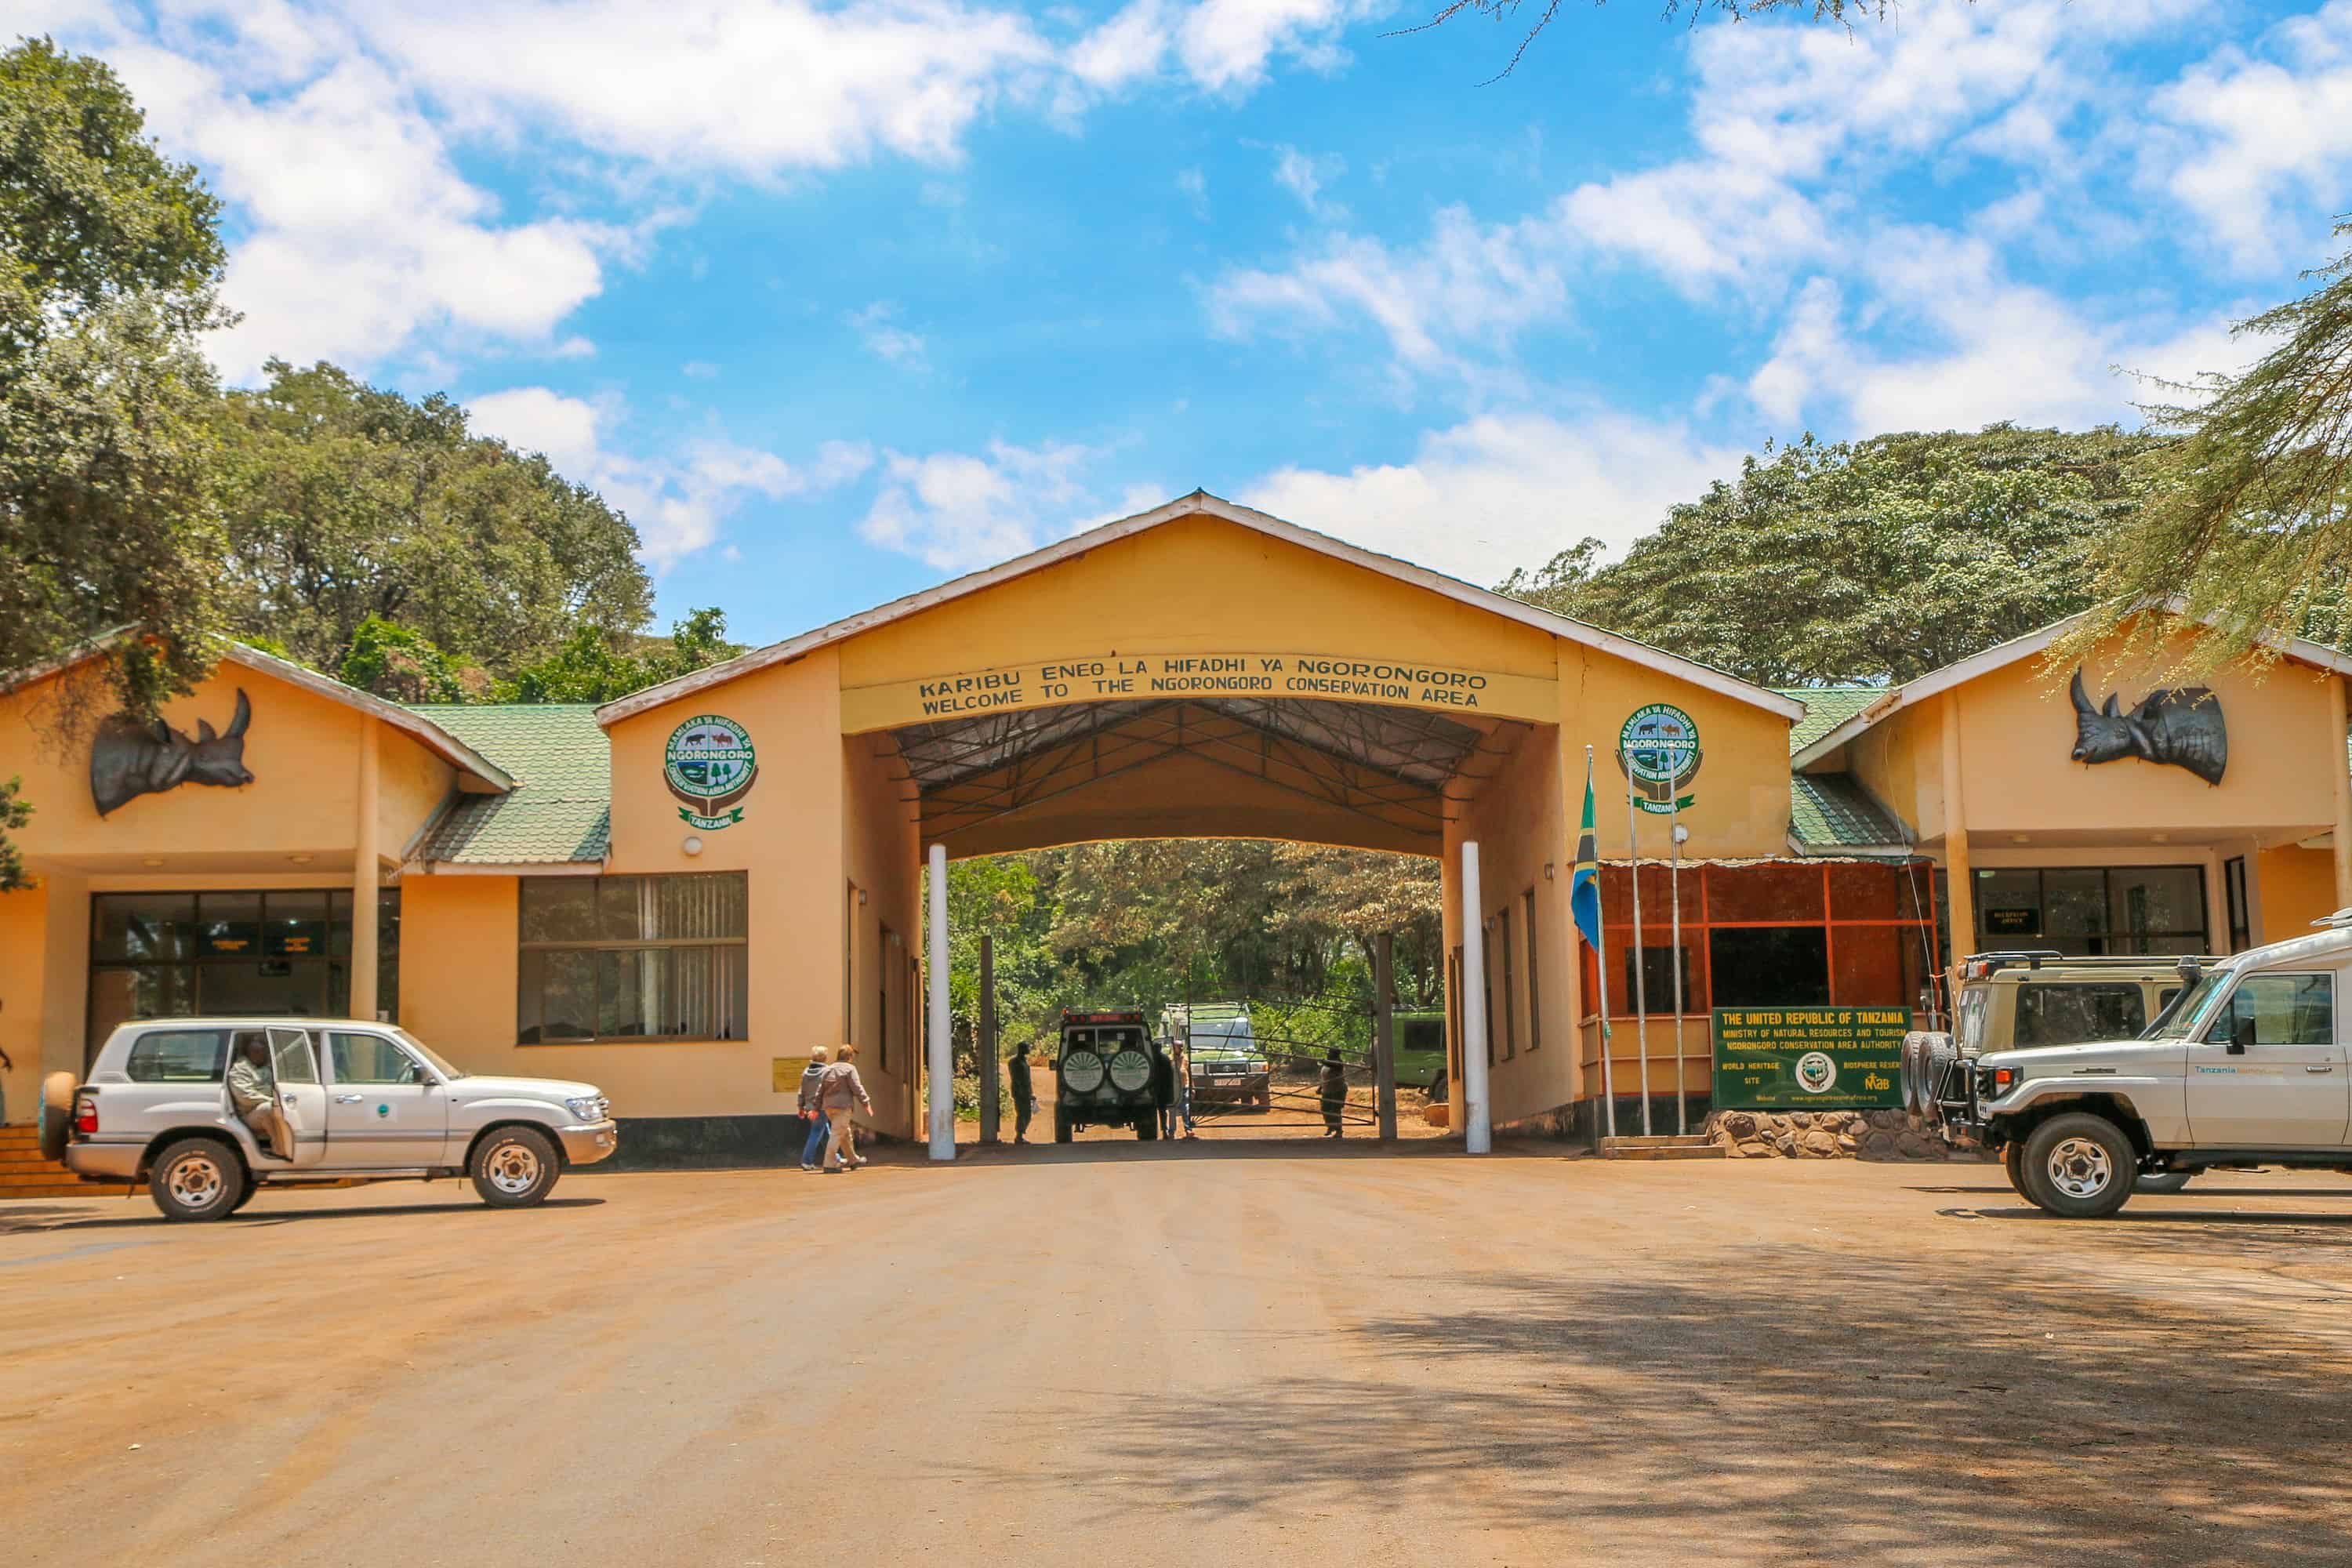 Ngorongoro Conservation Area Entrance